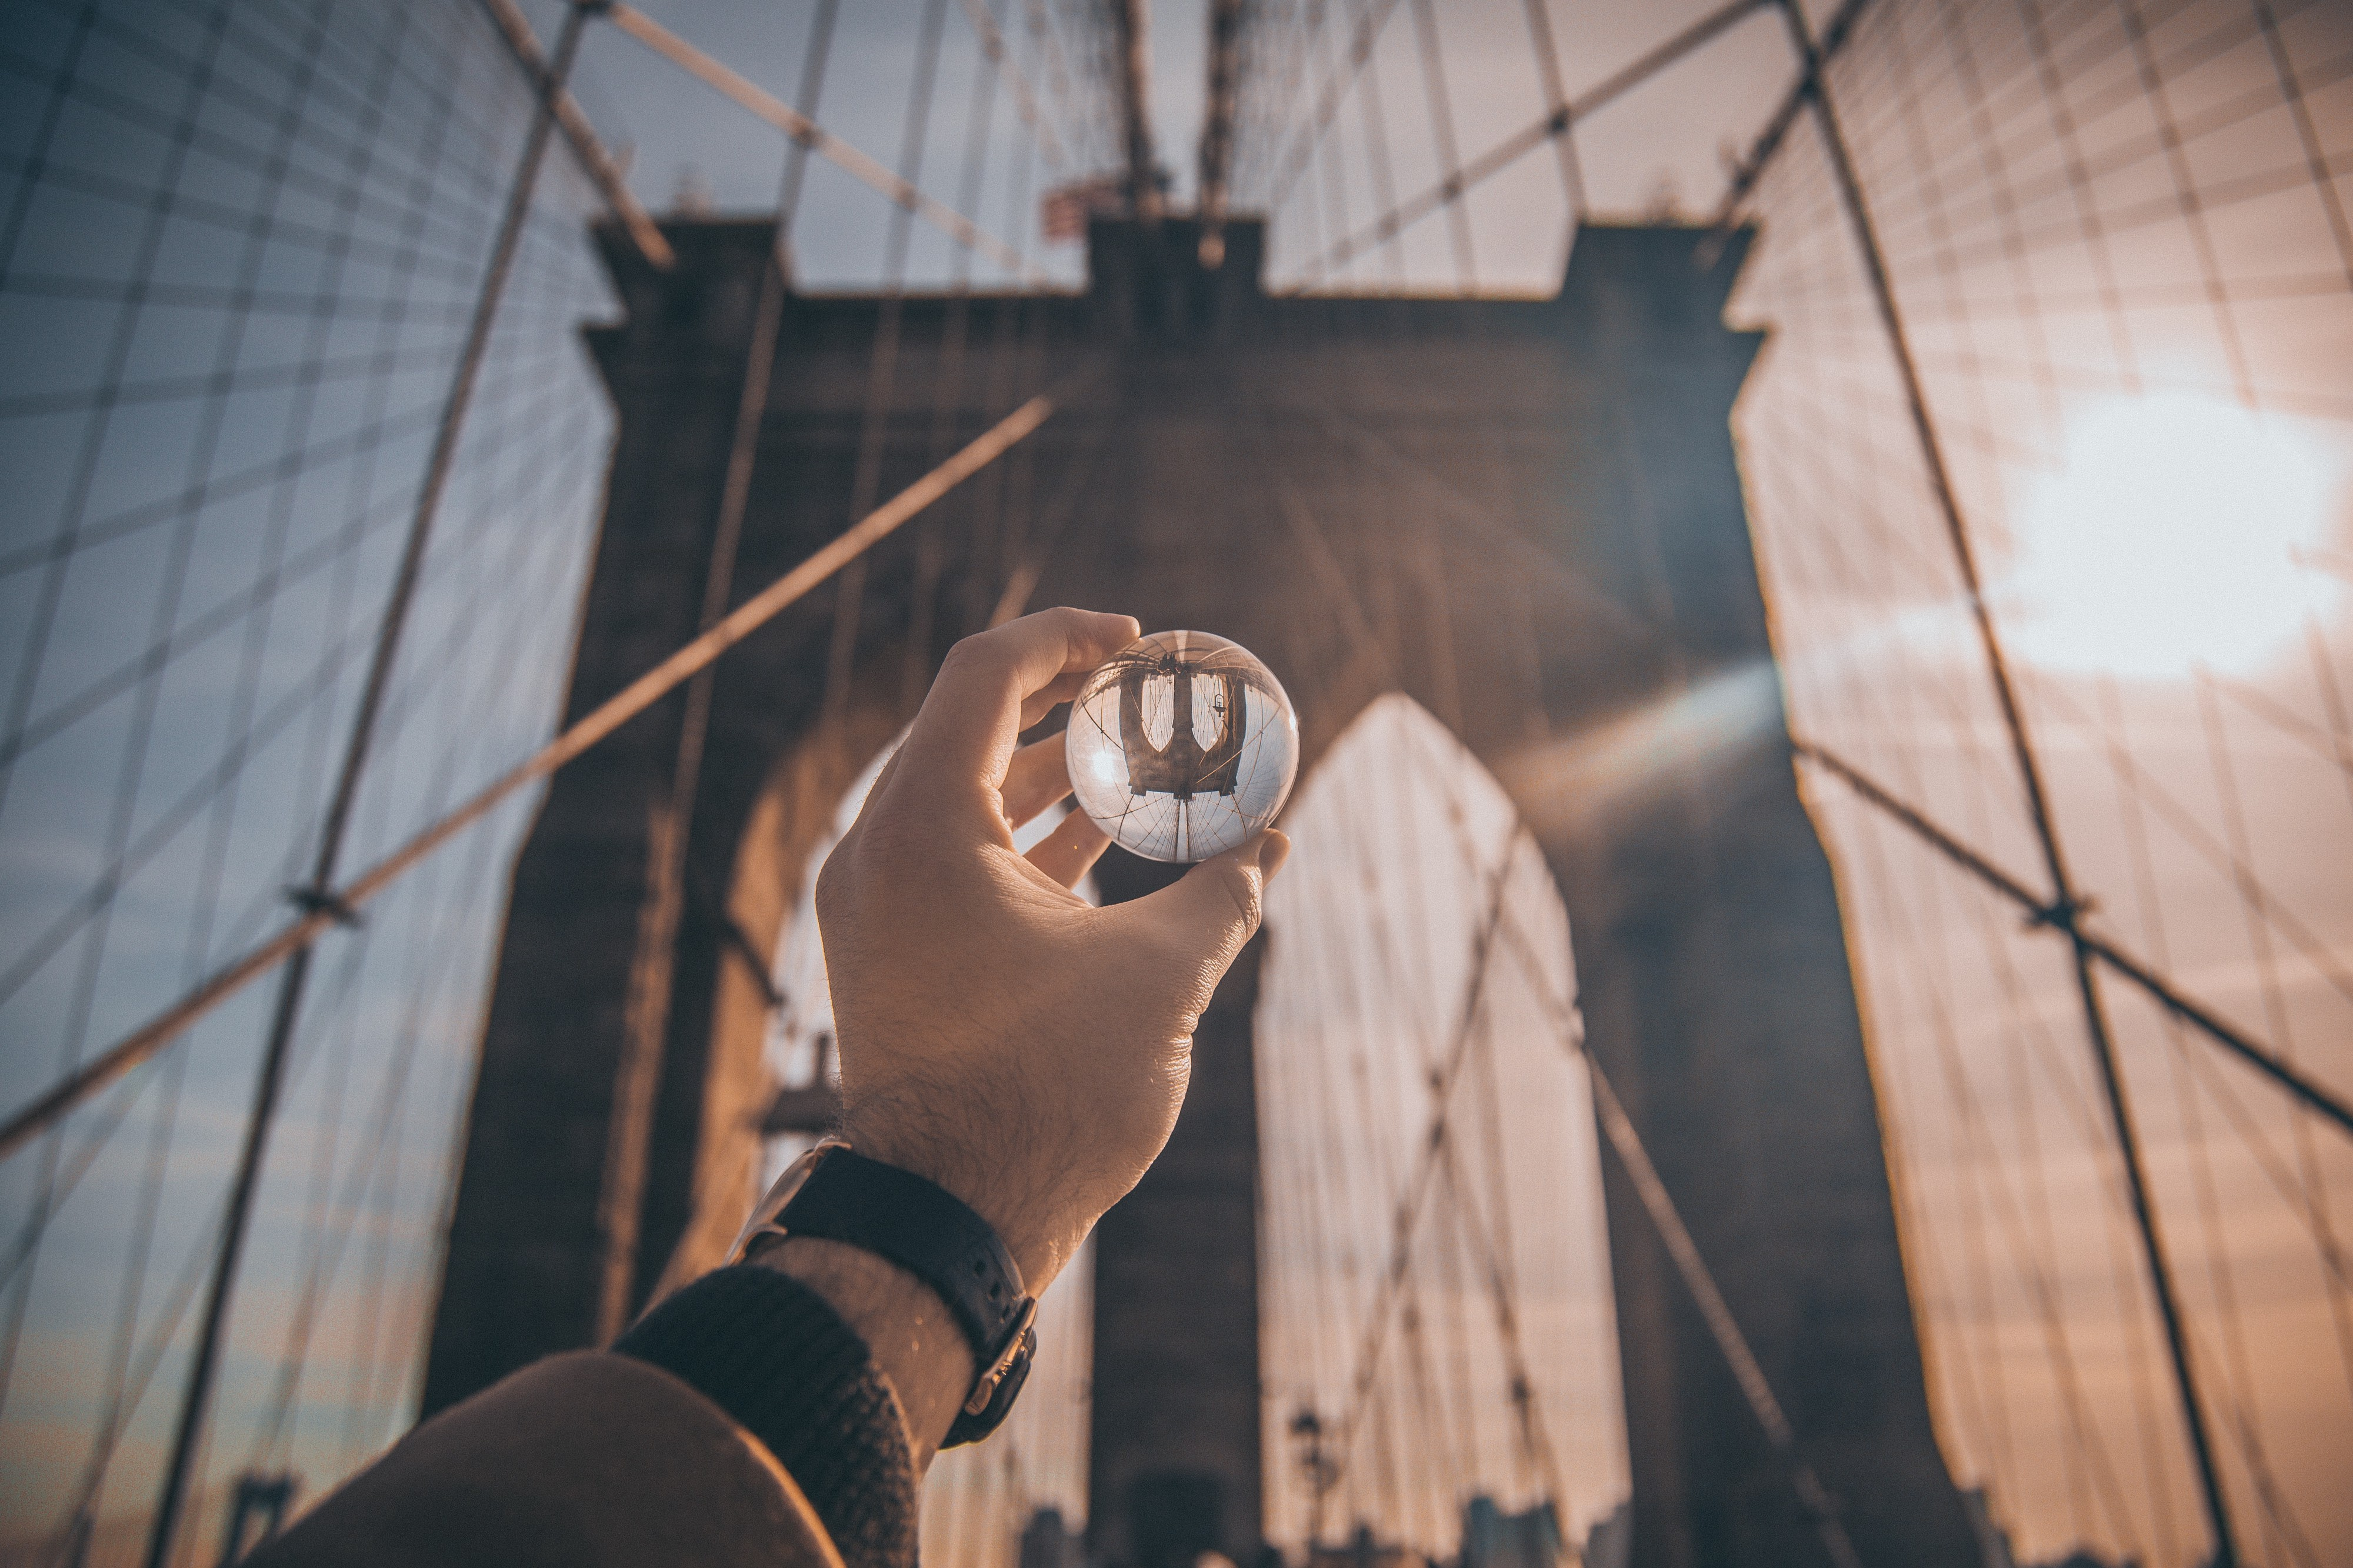 Hand holding glass ball up to the Brooklyn bridge. Glass ball shows bridge reflection but reversed.